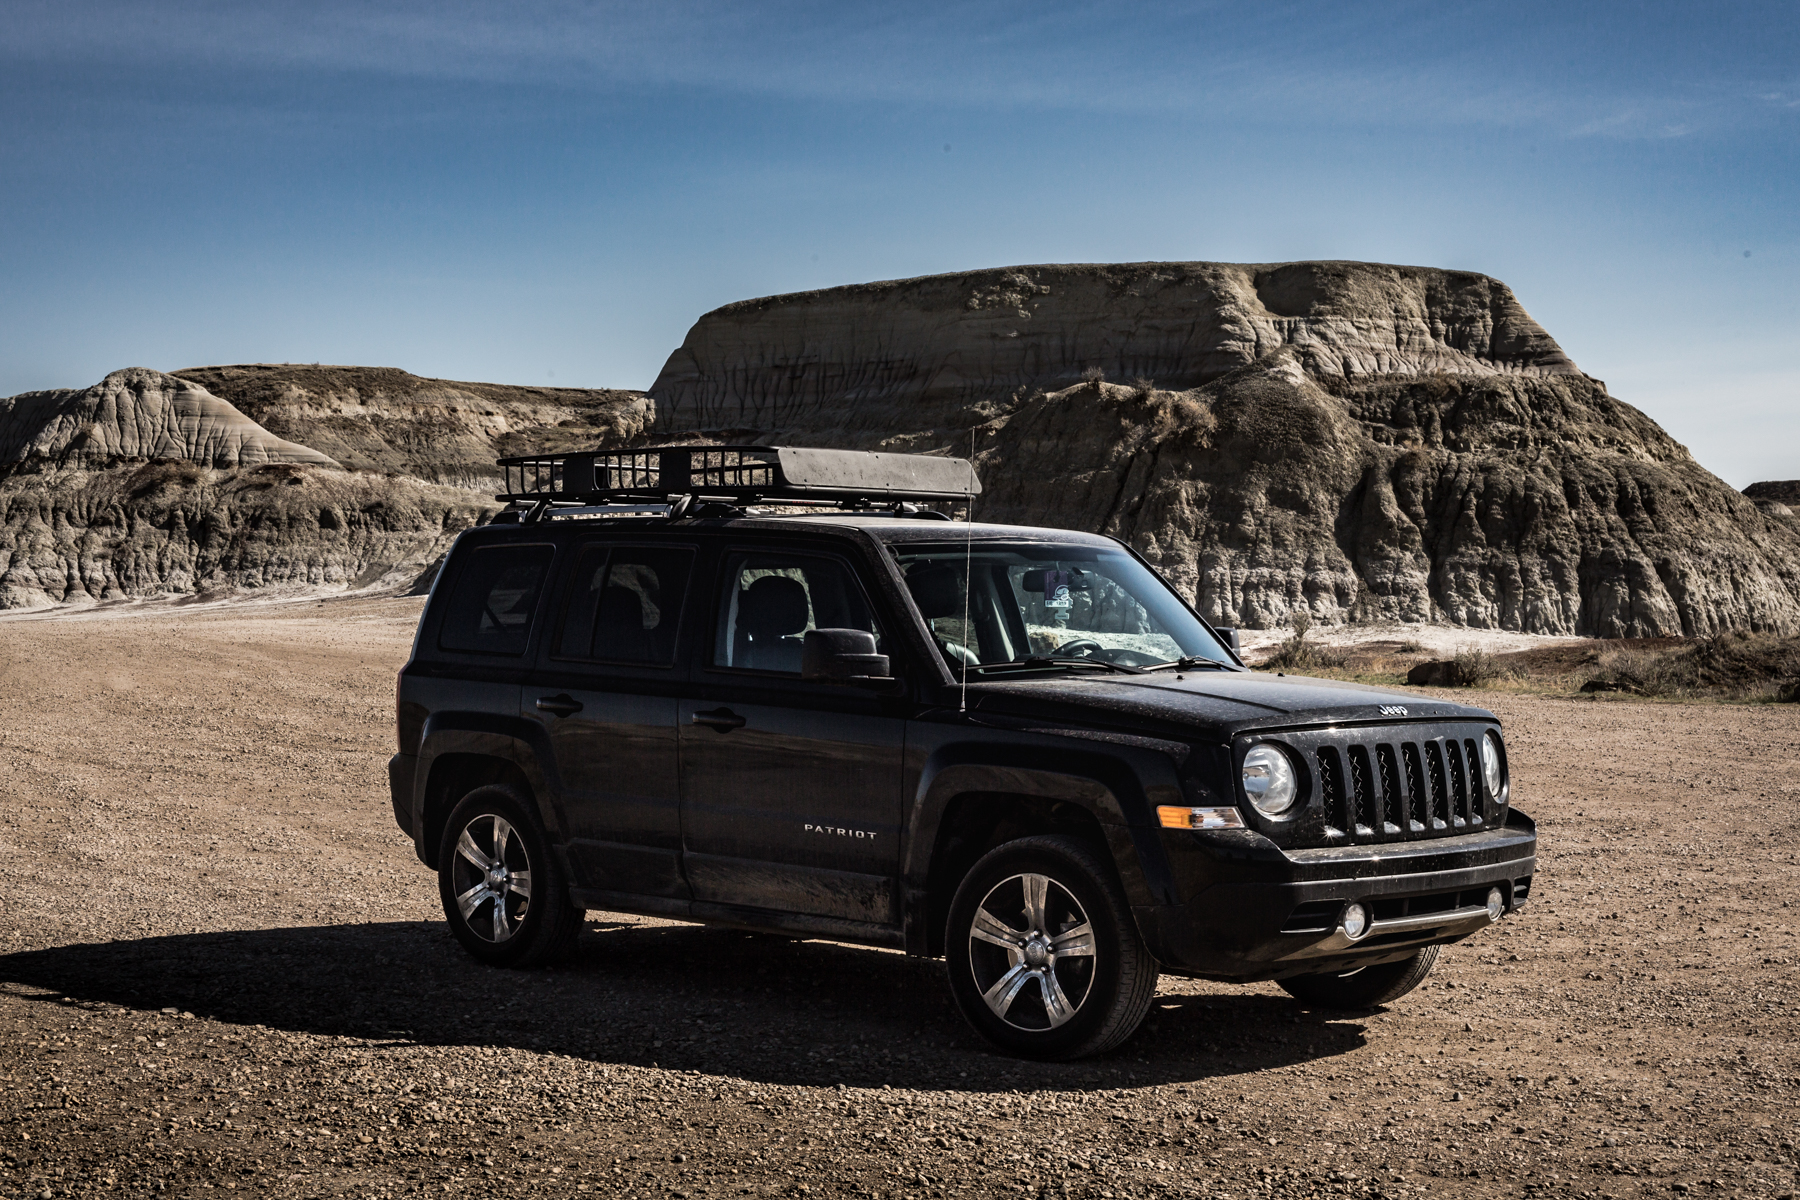 2017 Jeep Patriot with roof rack in the badlands